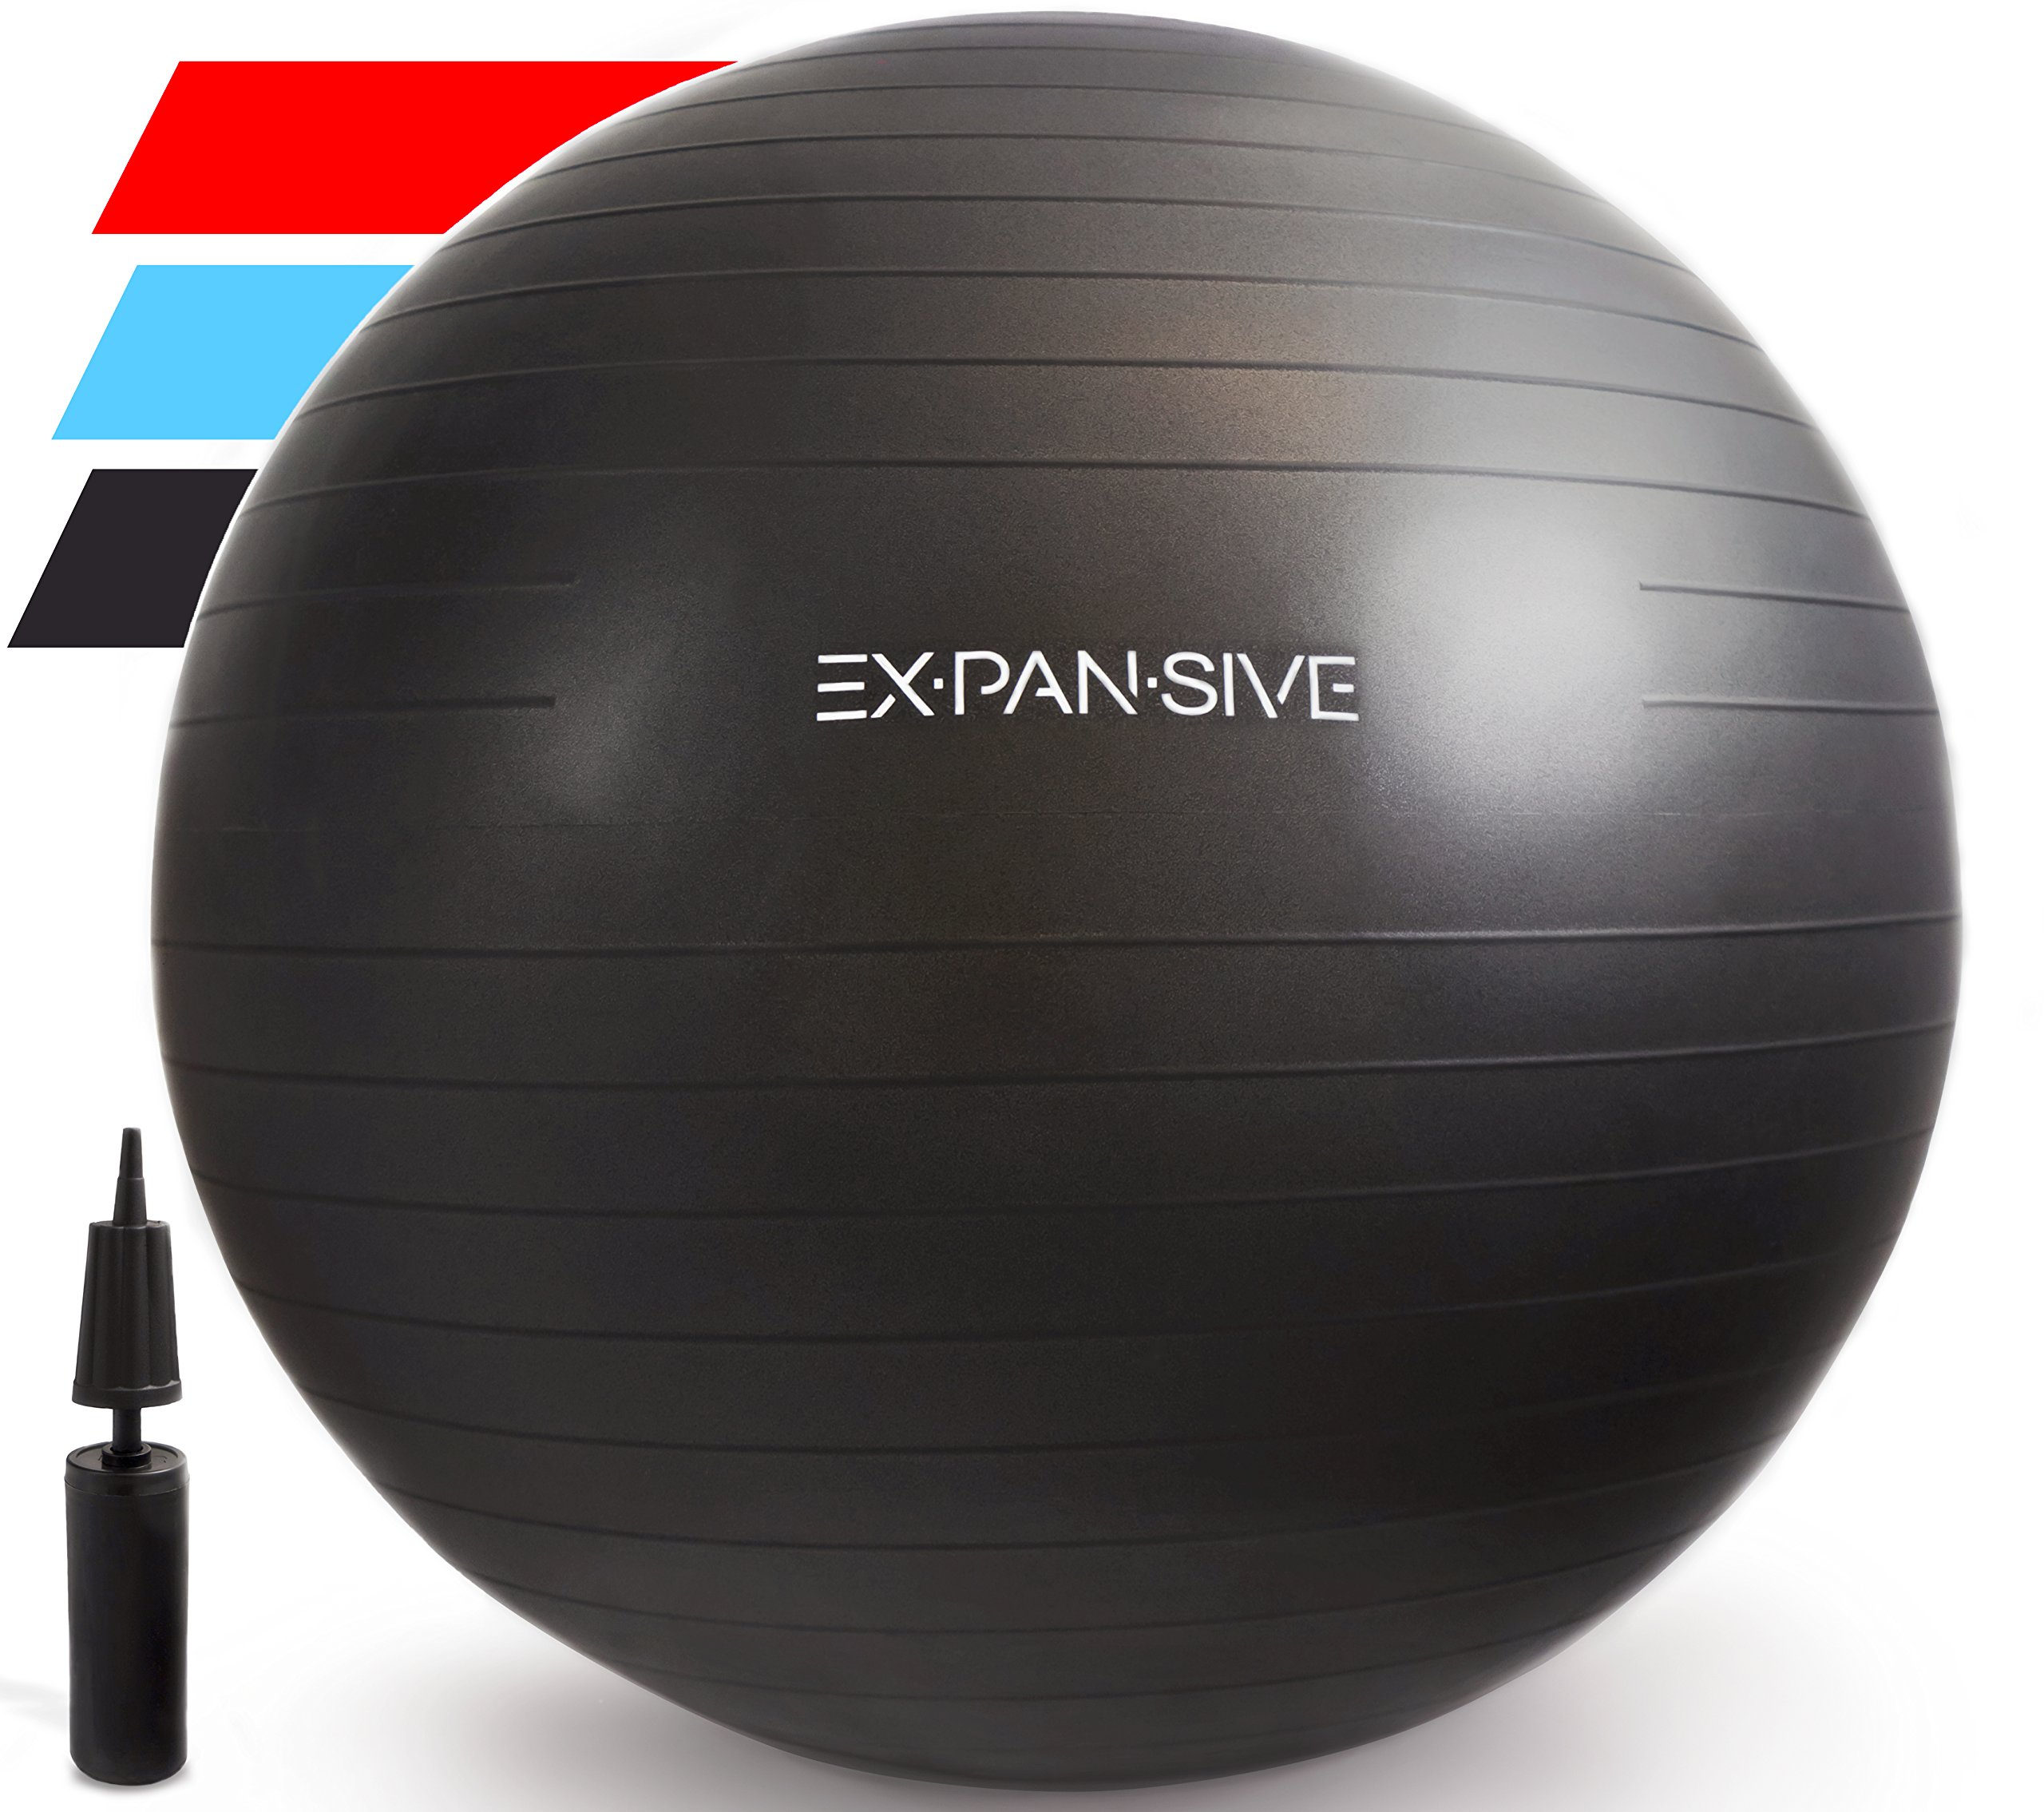 Expansive Living Anti Burst Exercise Ball (Black, 55cm) -2,000lbs STATIC STRENGTH STABILITY, PROFESSIONAL GRADE. Balance Ball | Physio Ball | Swiss Ball | Yoga Ball | Birthing Ball | Office Ball Chair